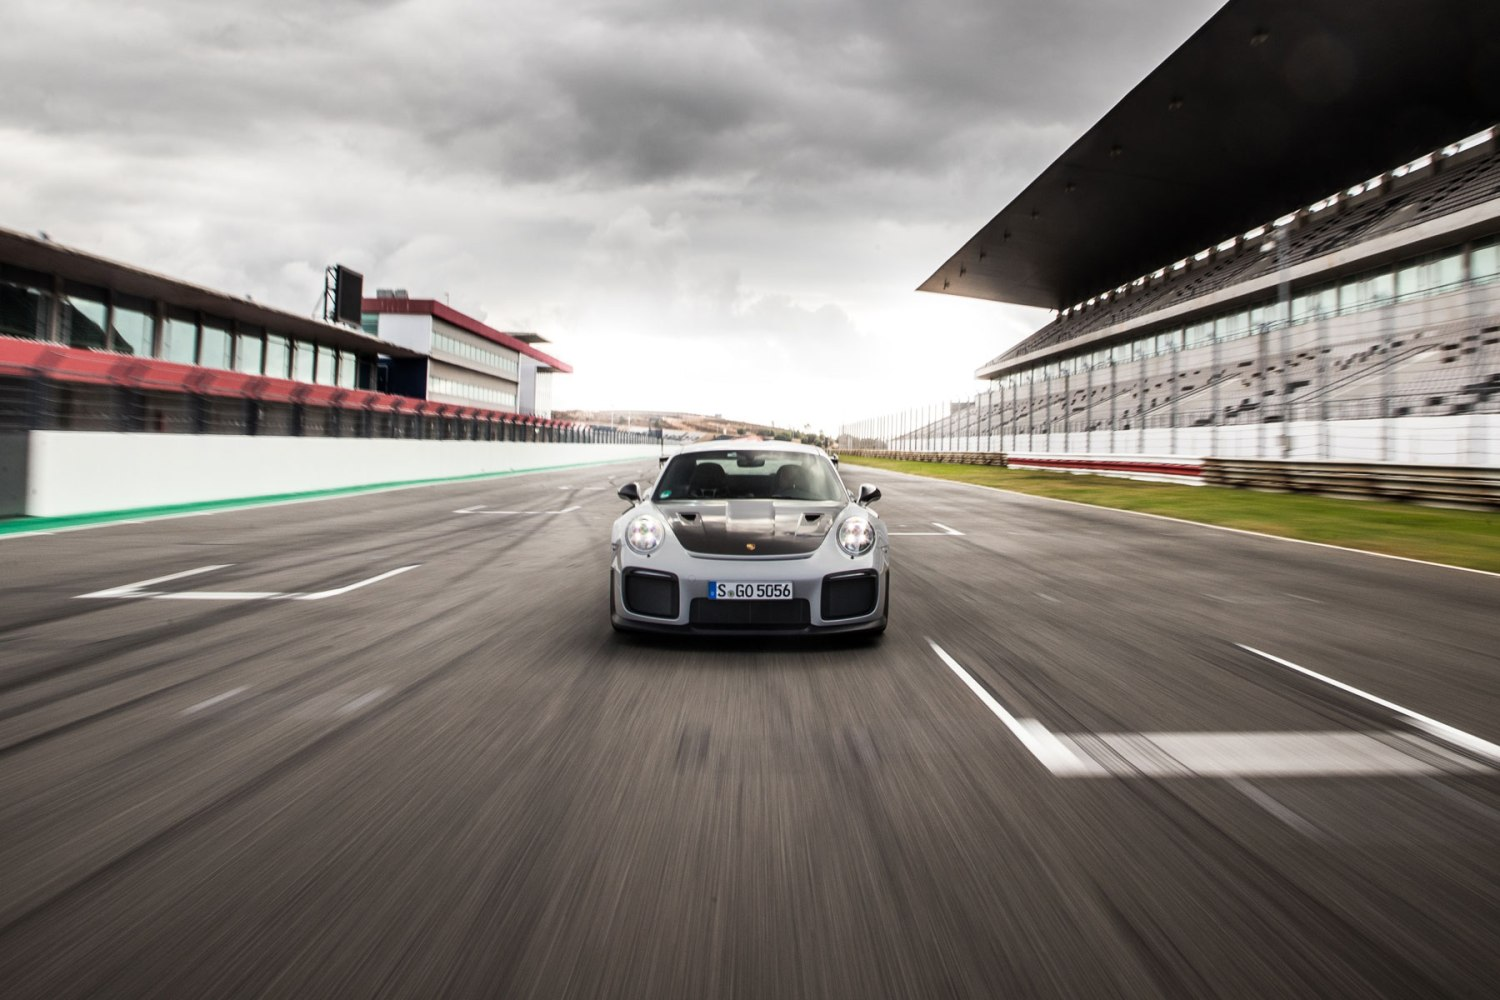 Porsche 911 GT2 RS – 2.8 seconds